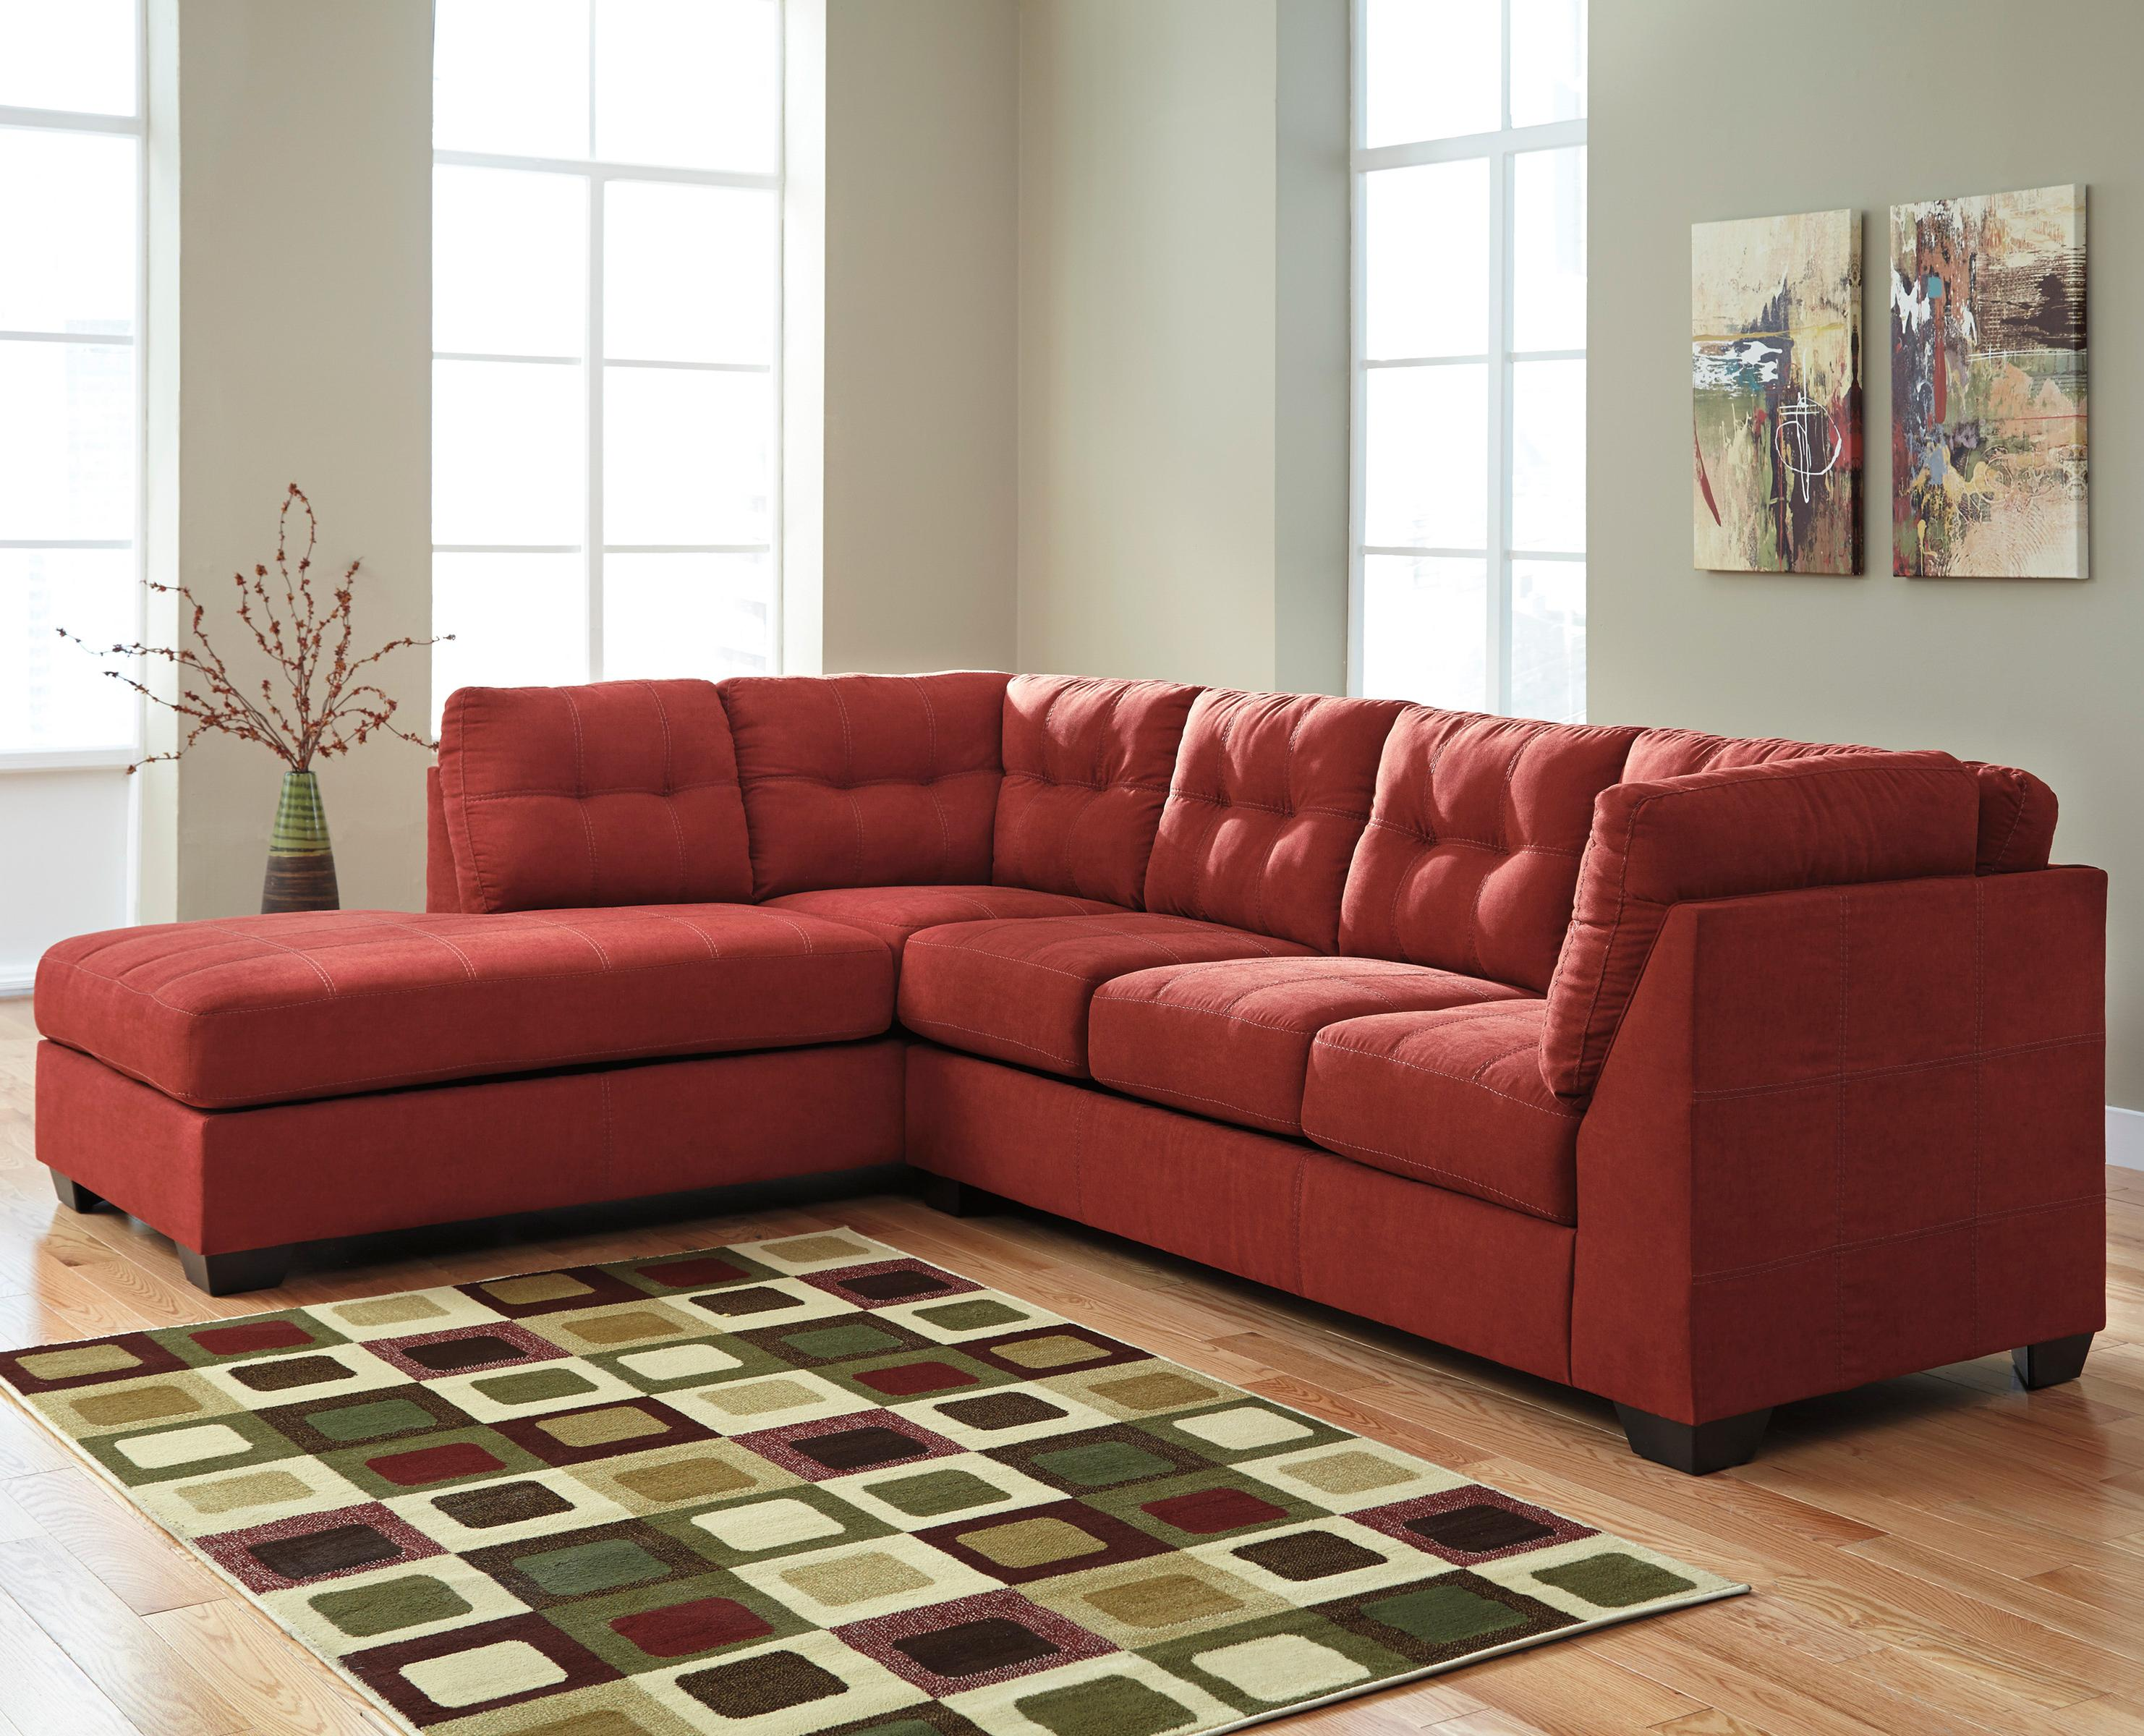 2 Piece Sectional W/ Sleeper U0026 Chaise